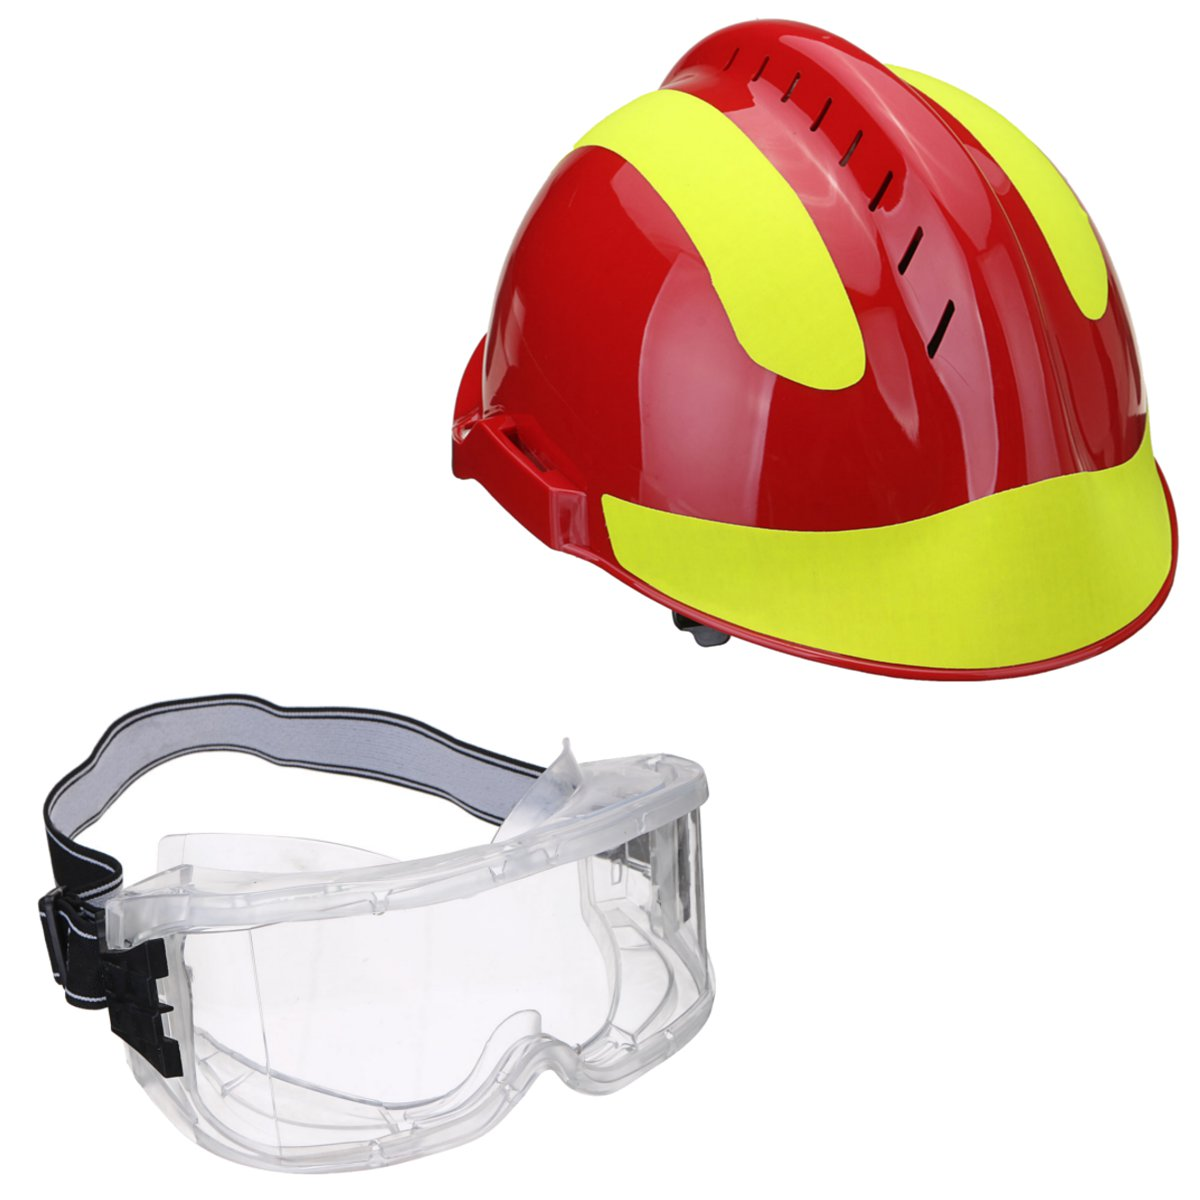 Safurance Rescue Helmet Fire Fighter Protective Glasses Safety Protector  Workplace Safety Fire Protection  53CM-63CM tactical wargame motorcycling helmet w eye protection glasses black size l7